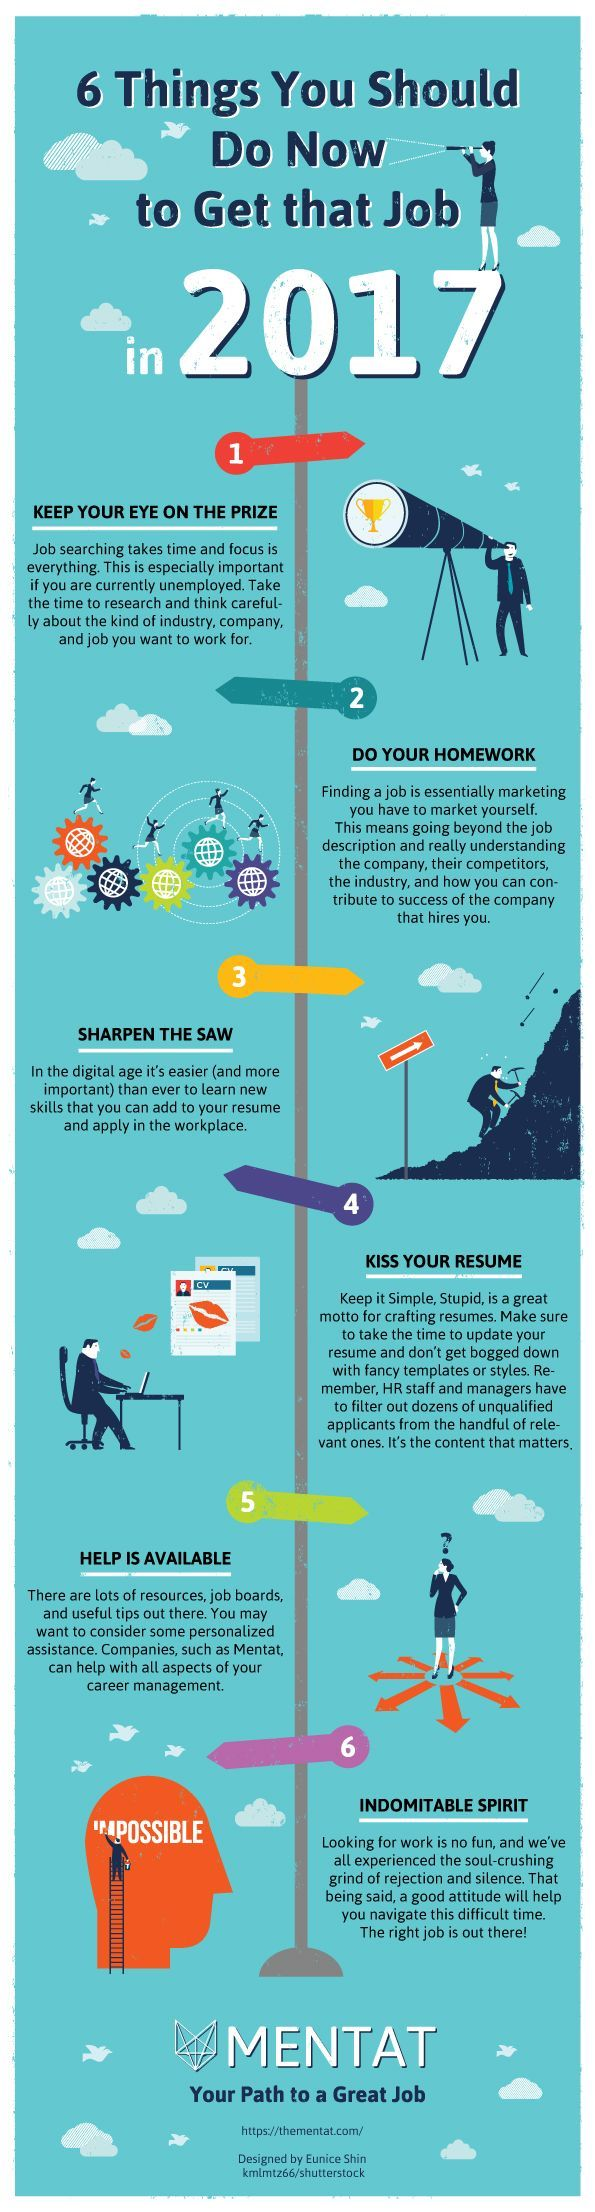 6 Things You Should Do NOW to Get that Job in 2017 - Infographic | If you're worried about your job security, interested in changing careers, or currently unemployed, this time of year is ideal to seize the day and get yourself that new job in 2017